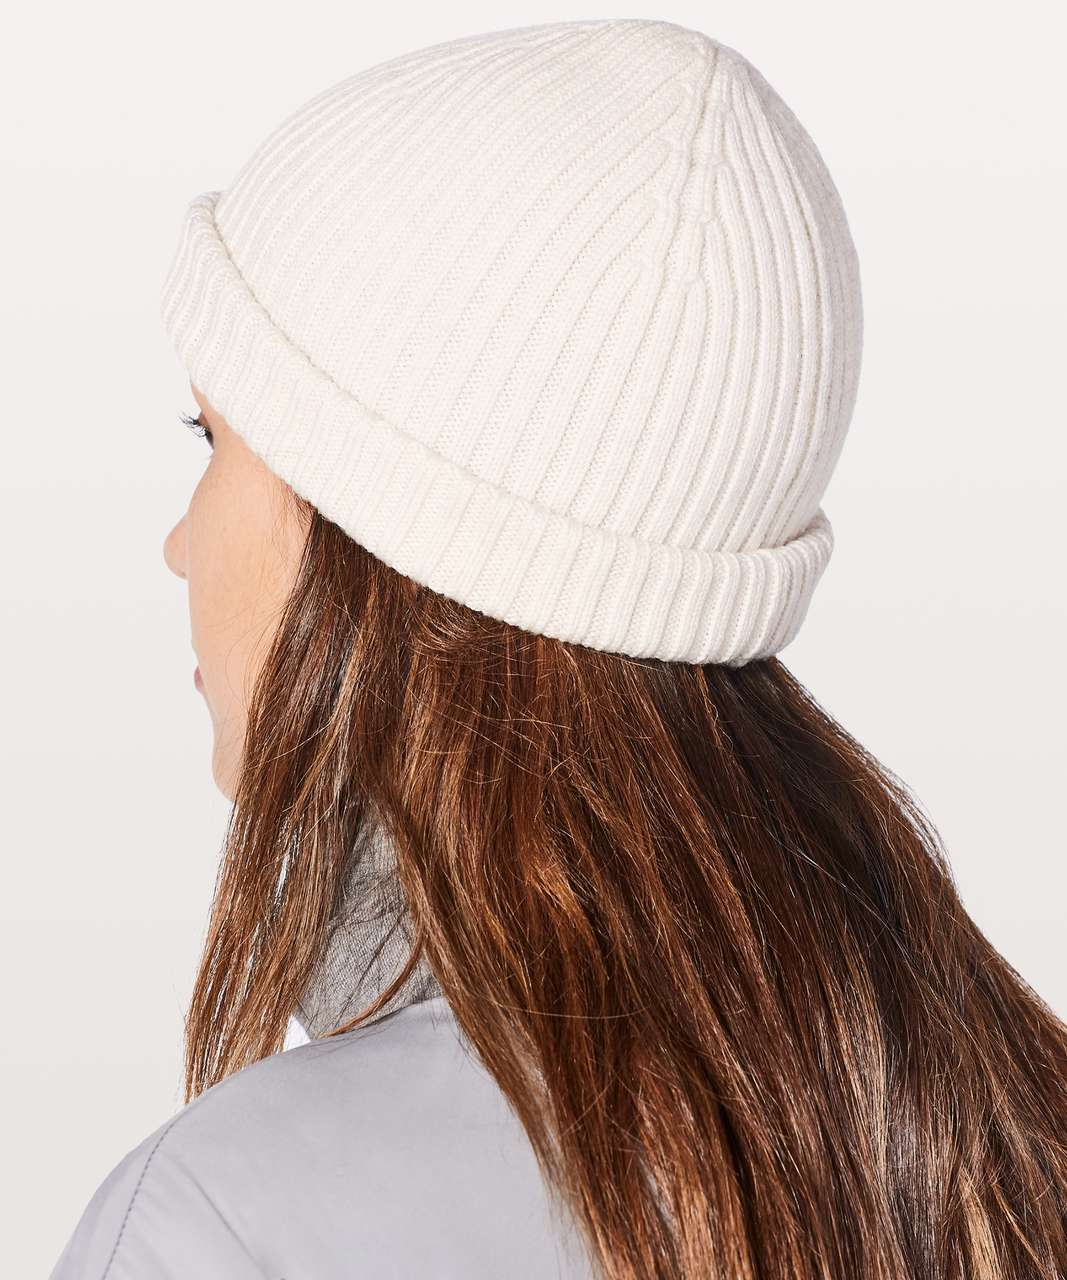 Lululemon Wool Be Cozy Toque - Heathered Angel Wing